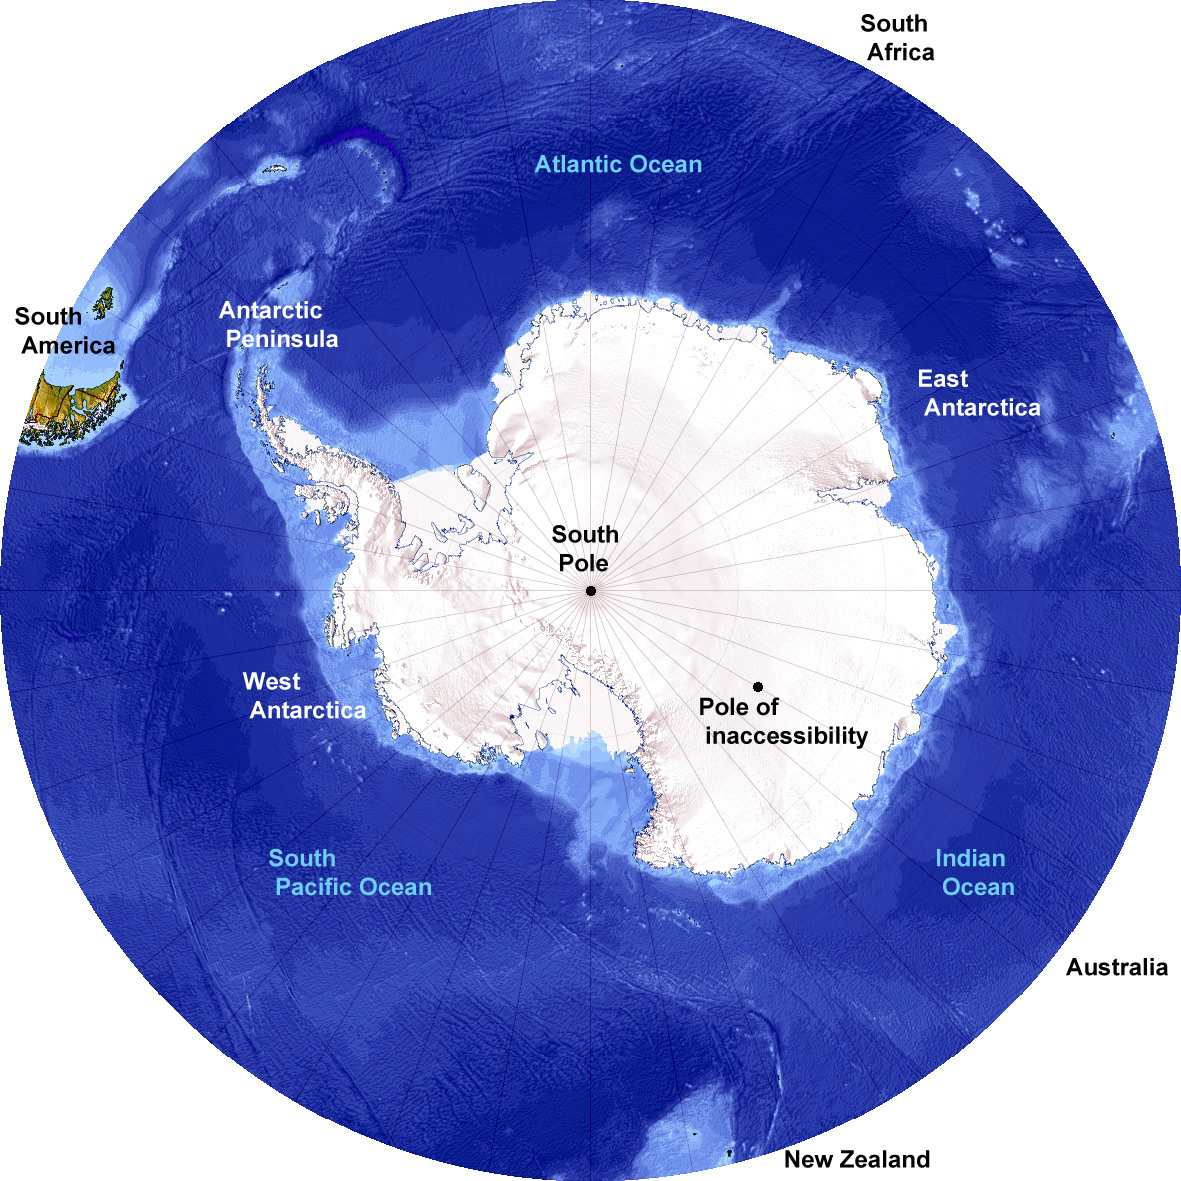 Antarctica Travel - A Guide for Travelling to Antarctica